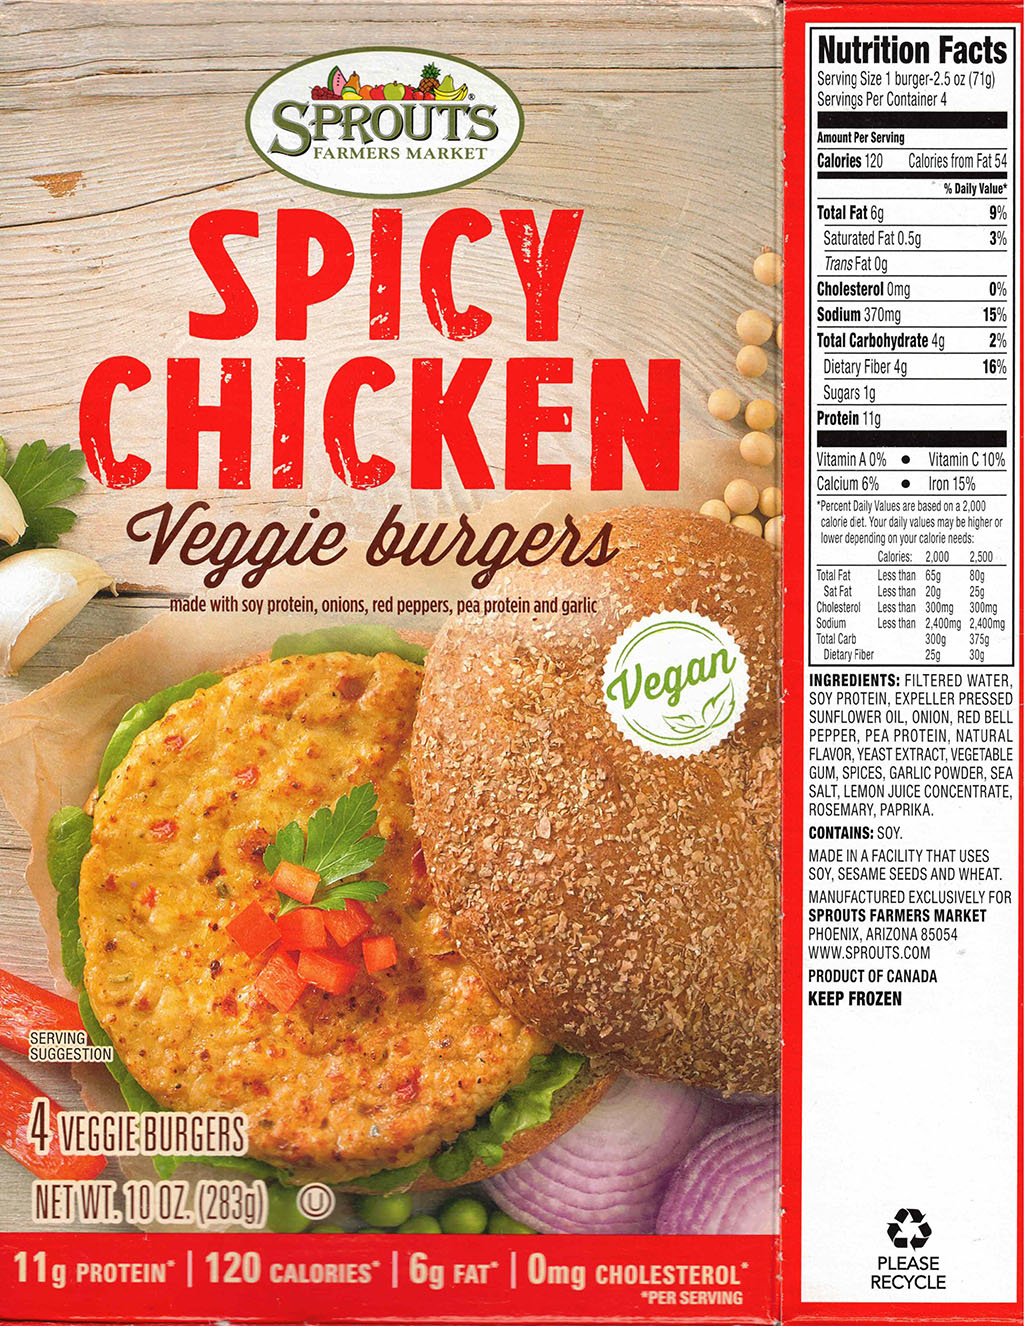 Sprouts Spicy Chicken Veggie Burgers nutrition and ingredients